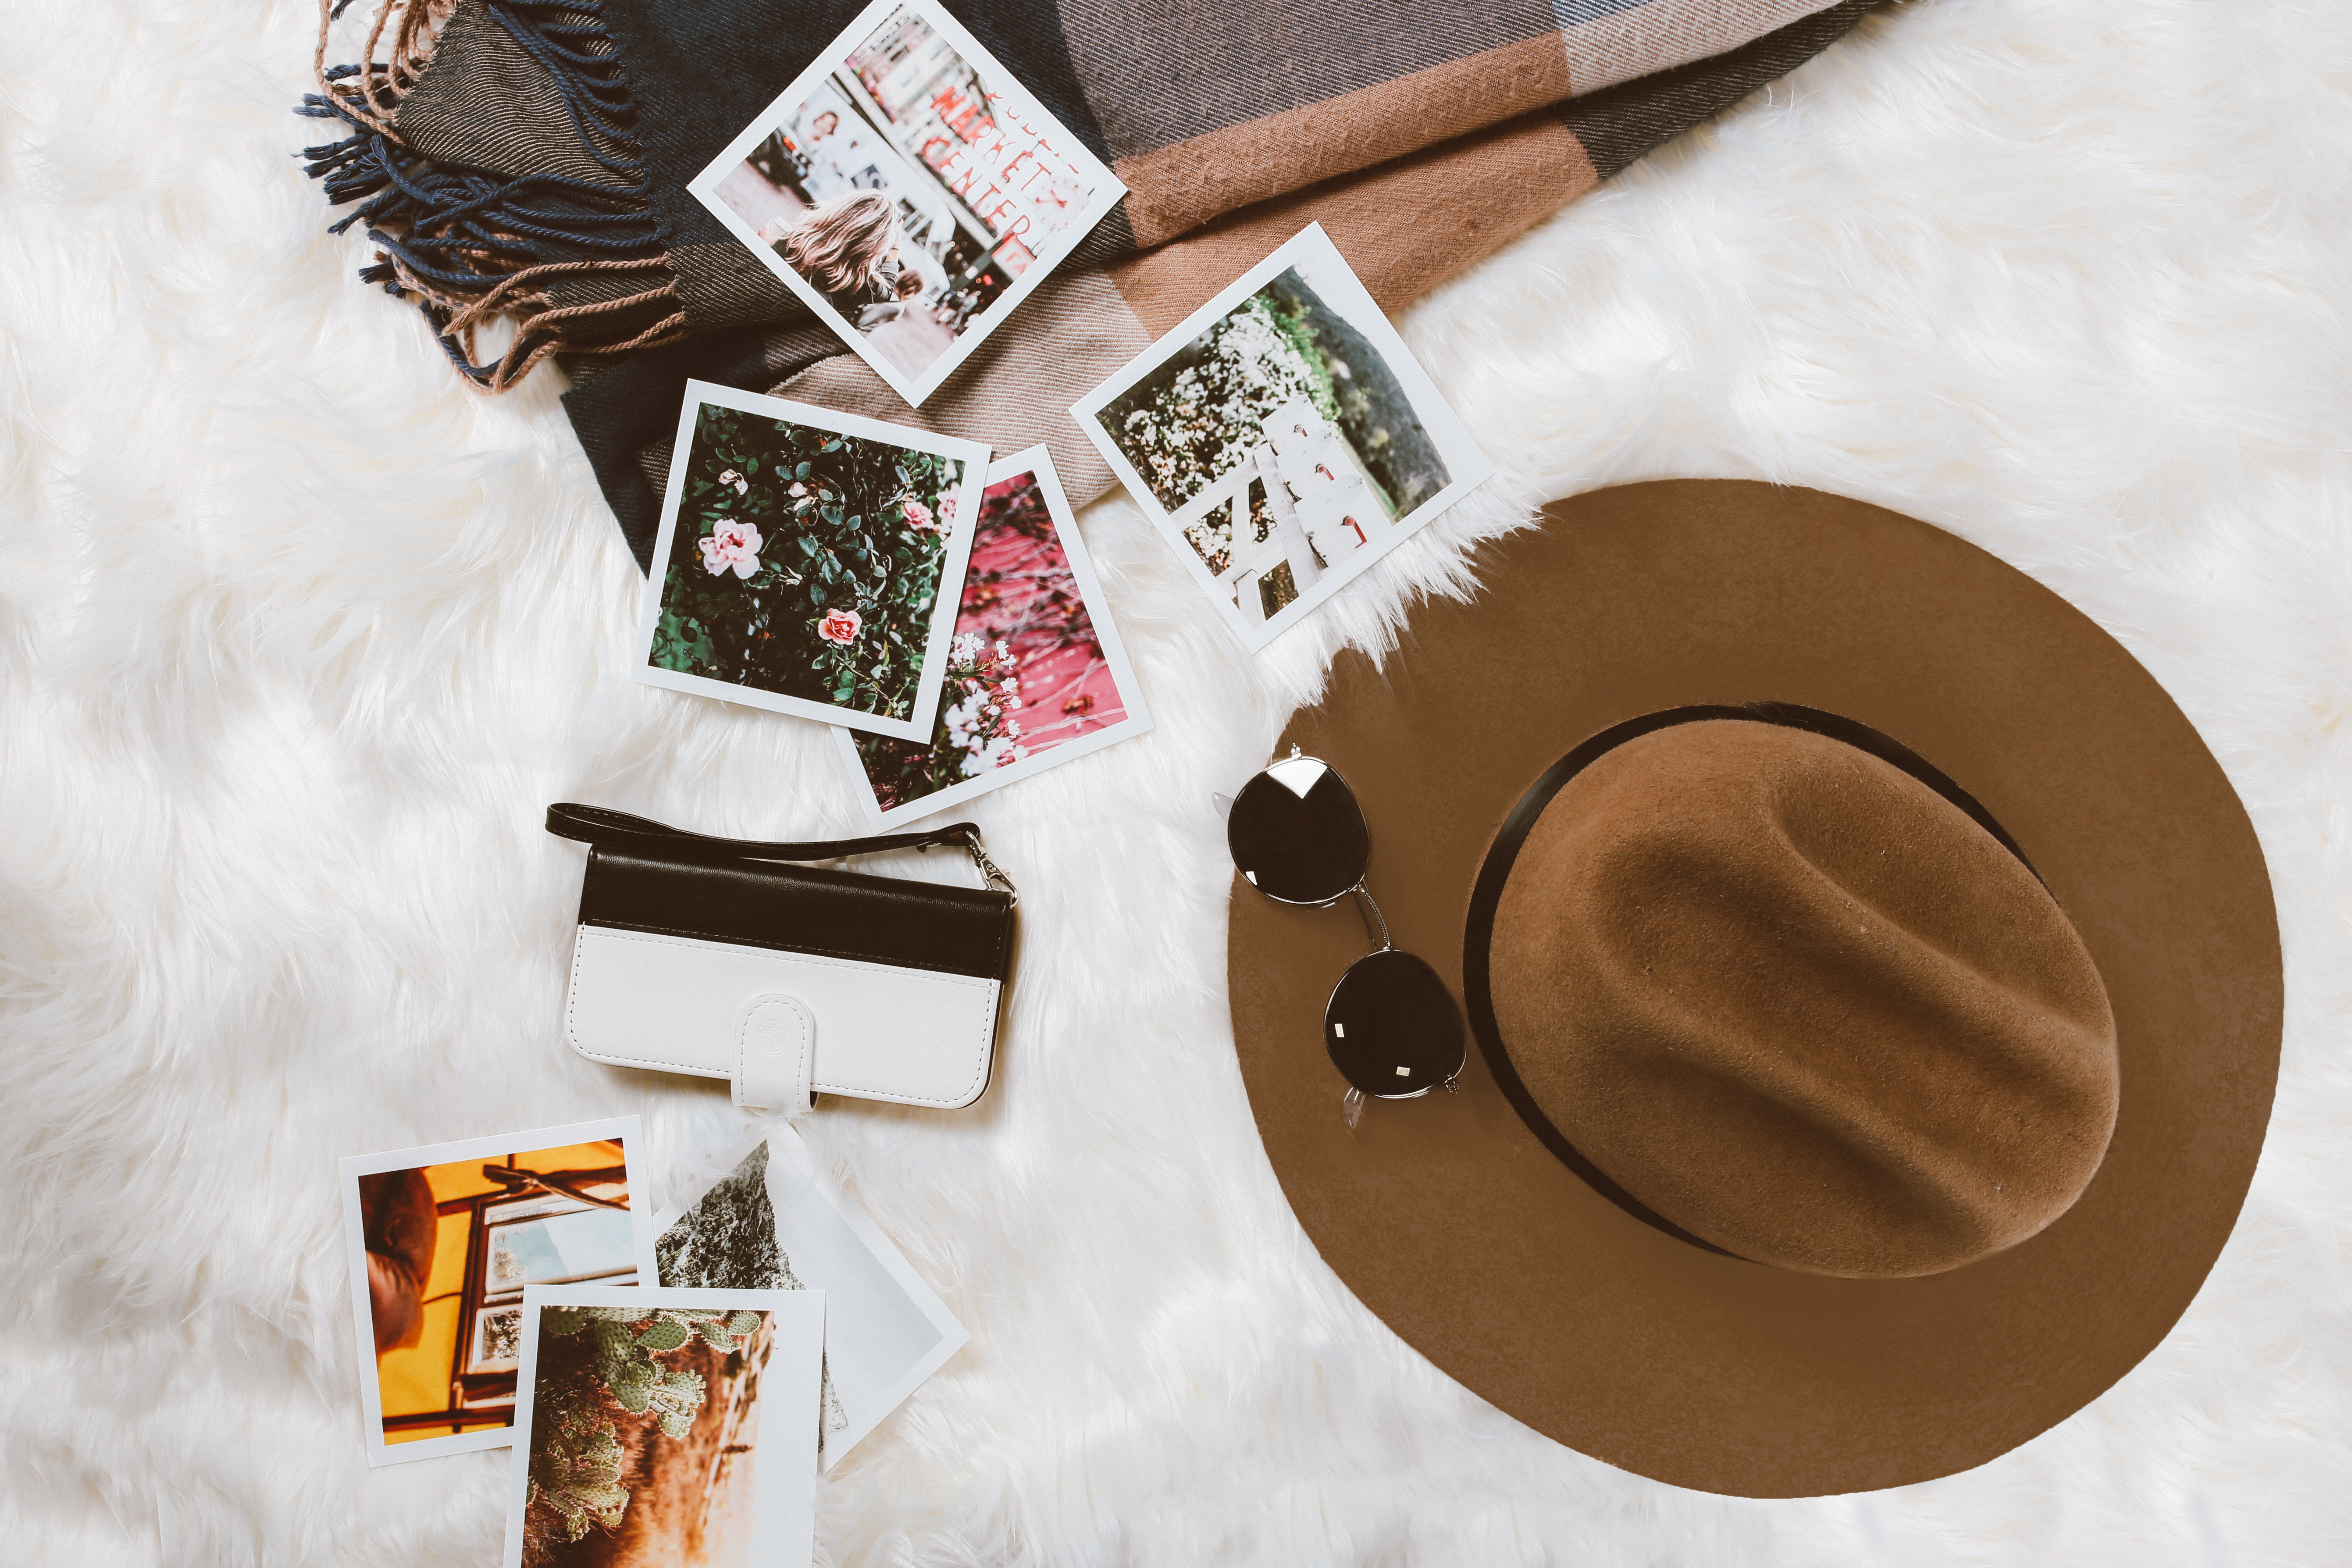 10 Pieces To Pack For Your Next Vacay